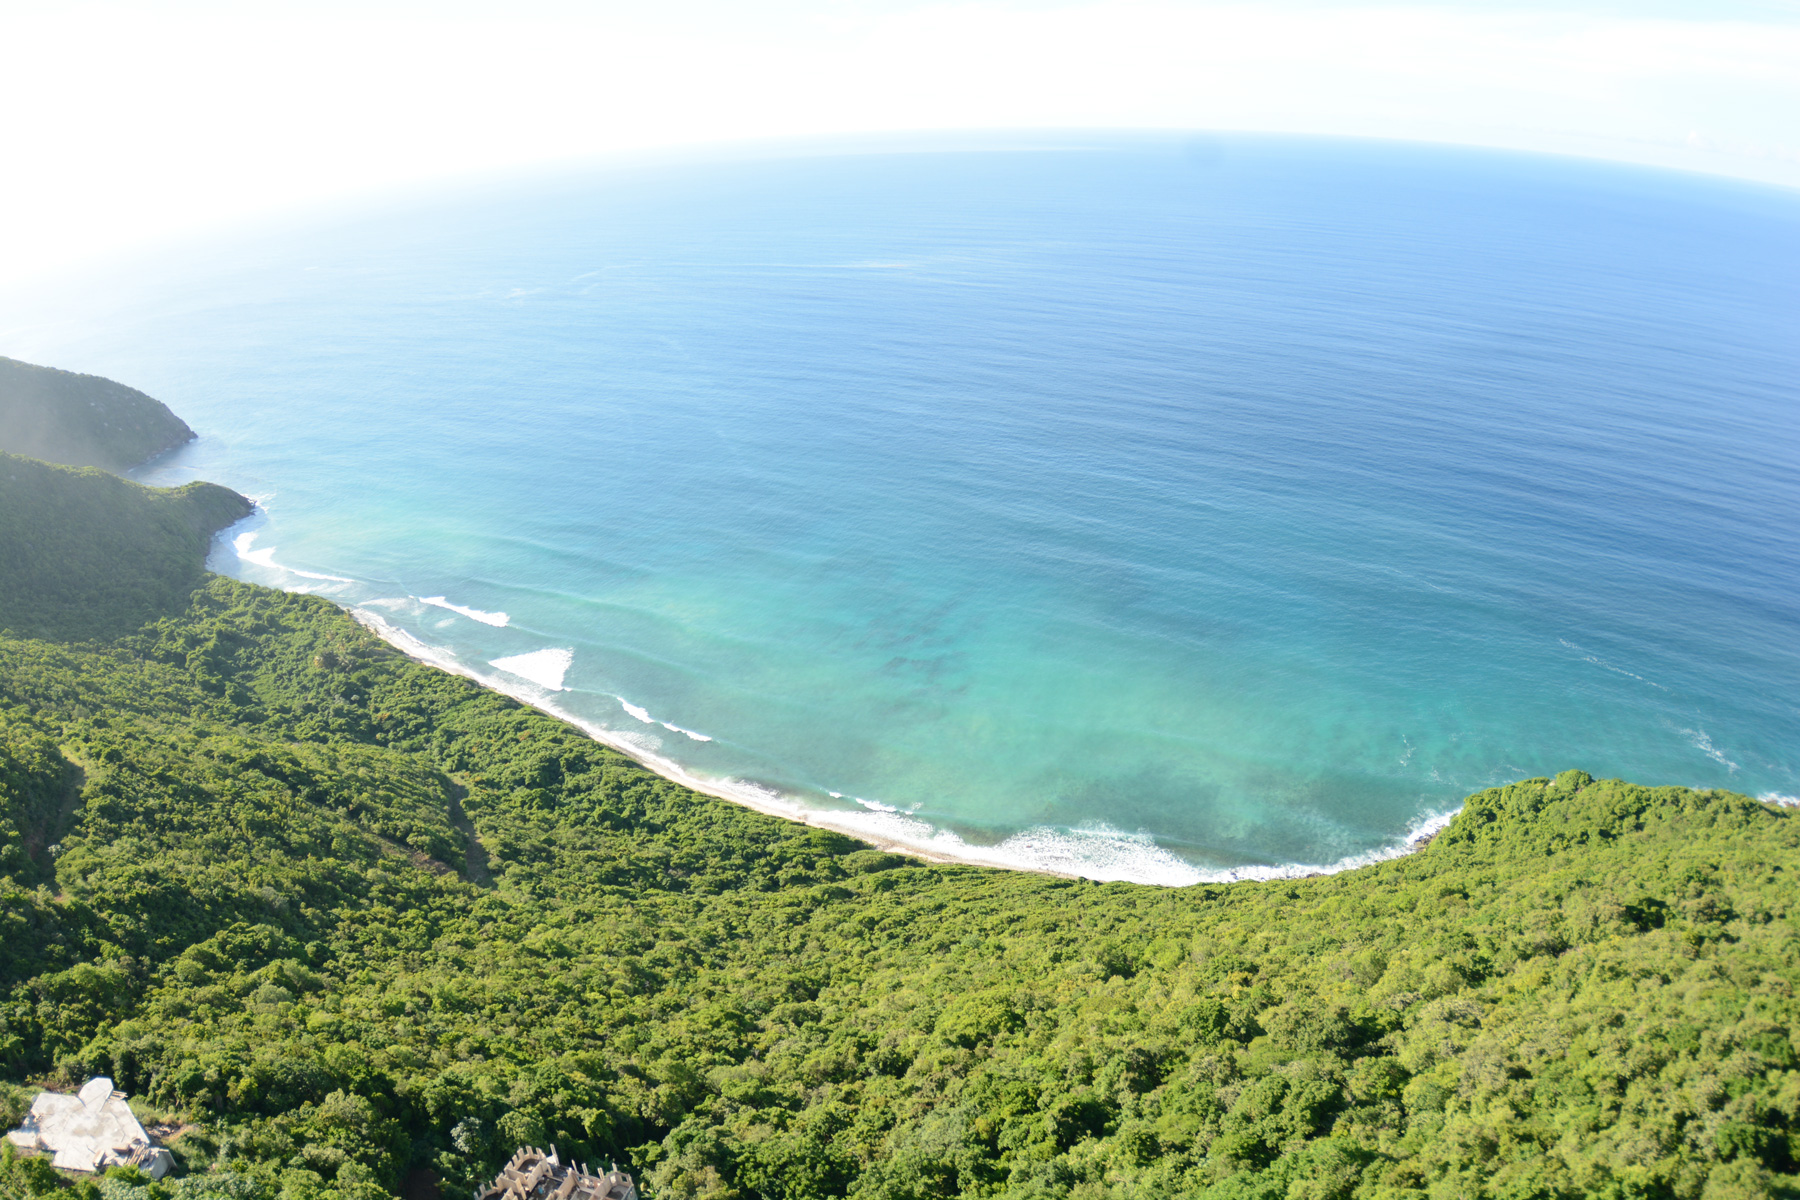 Land for Sale at Larmer Bay Land 166 Larmer Bay, Tortola British Virgin Islands